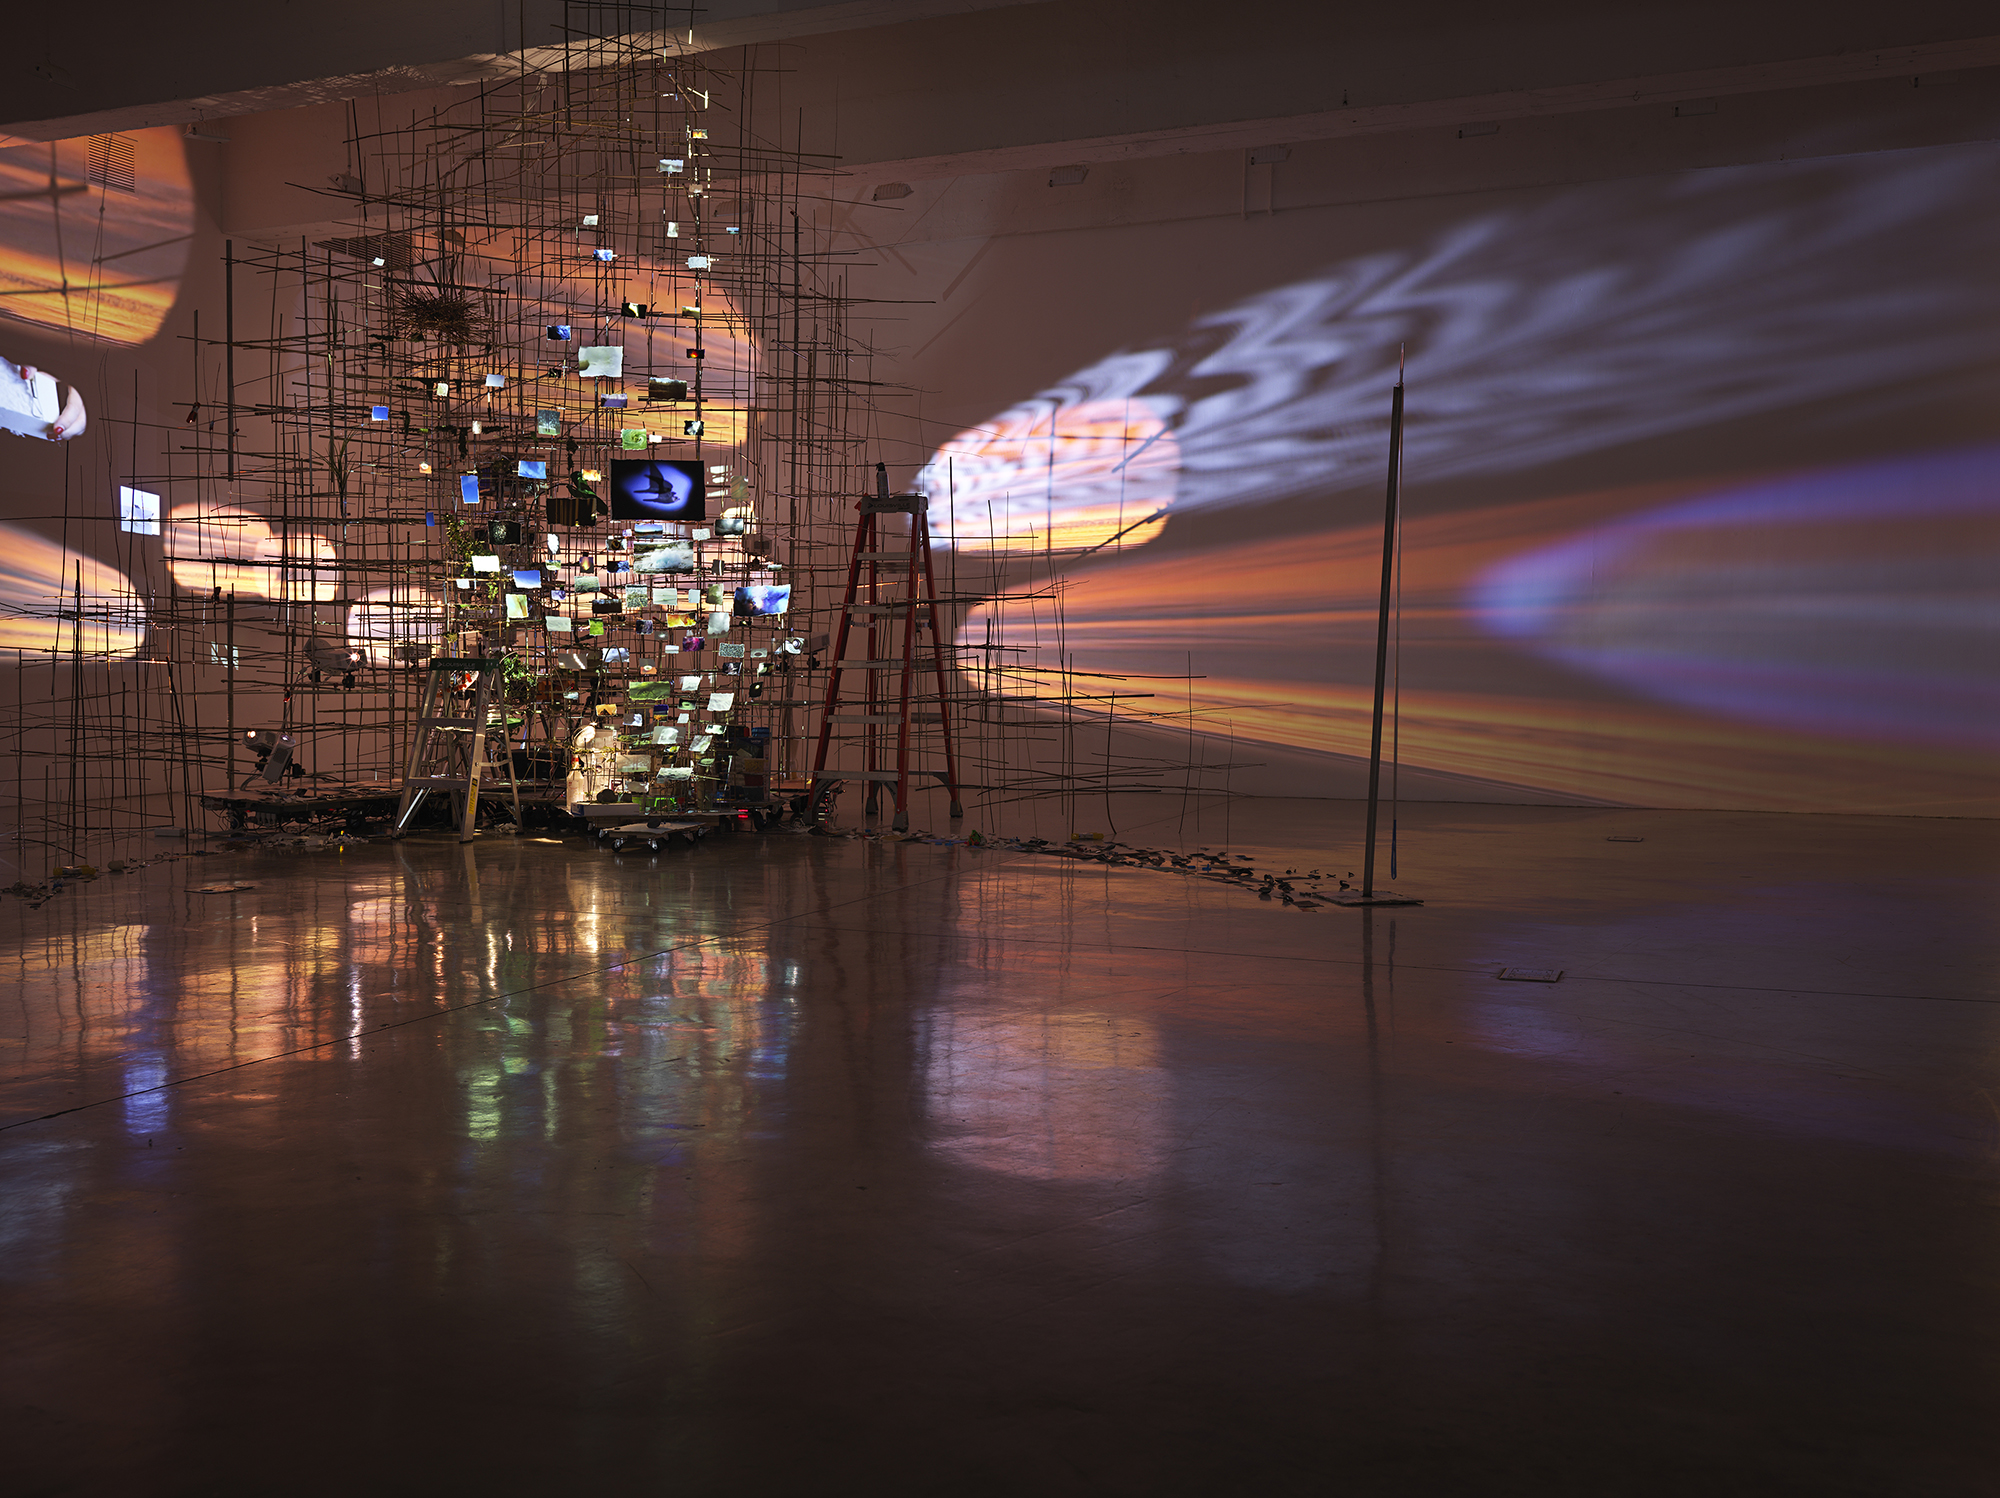 fall art guide, art, features, museums, galleries, met, moma, american folk art museum, whitney, bronx museum, audrey heckler collection, sarah sze